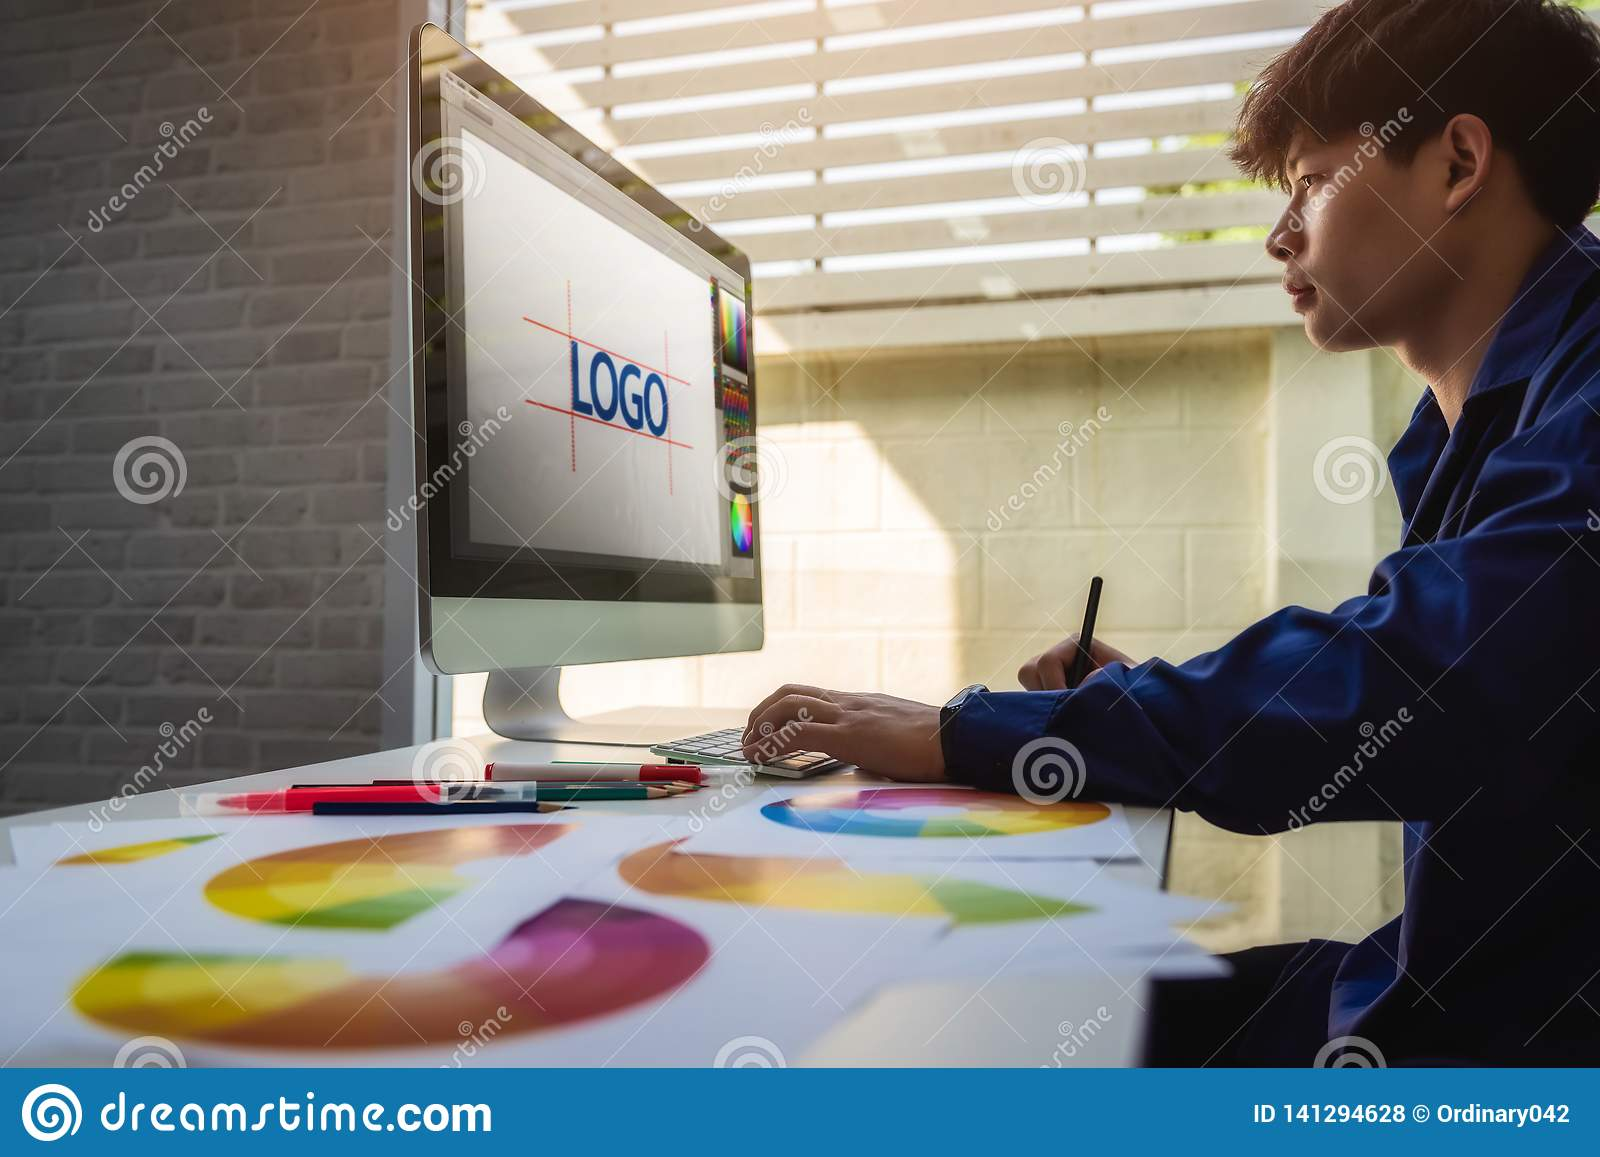 Graphic designer man creative using Color swatch samples for website layout and application for mobile phone in workplace